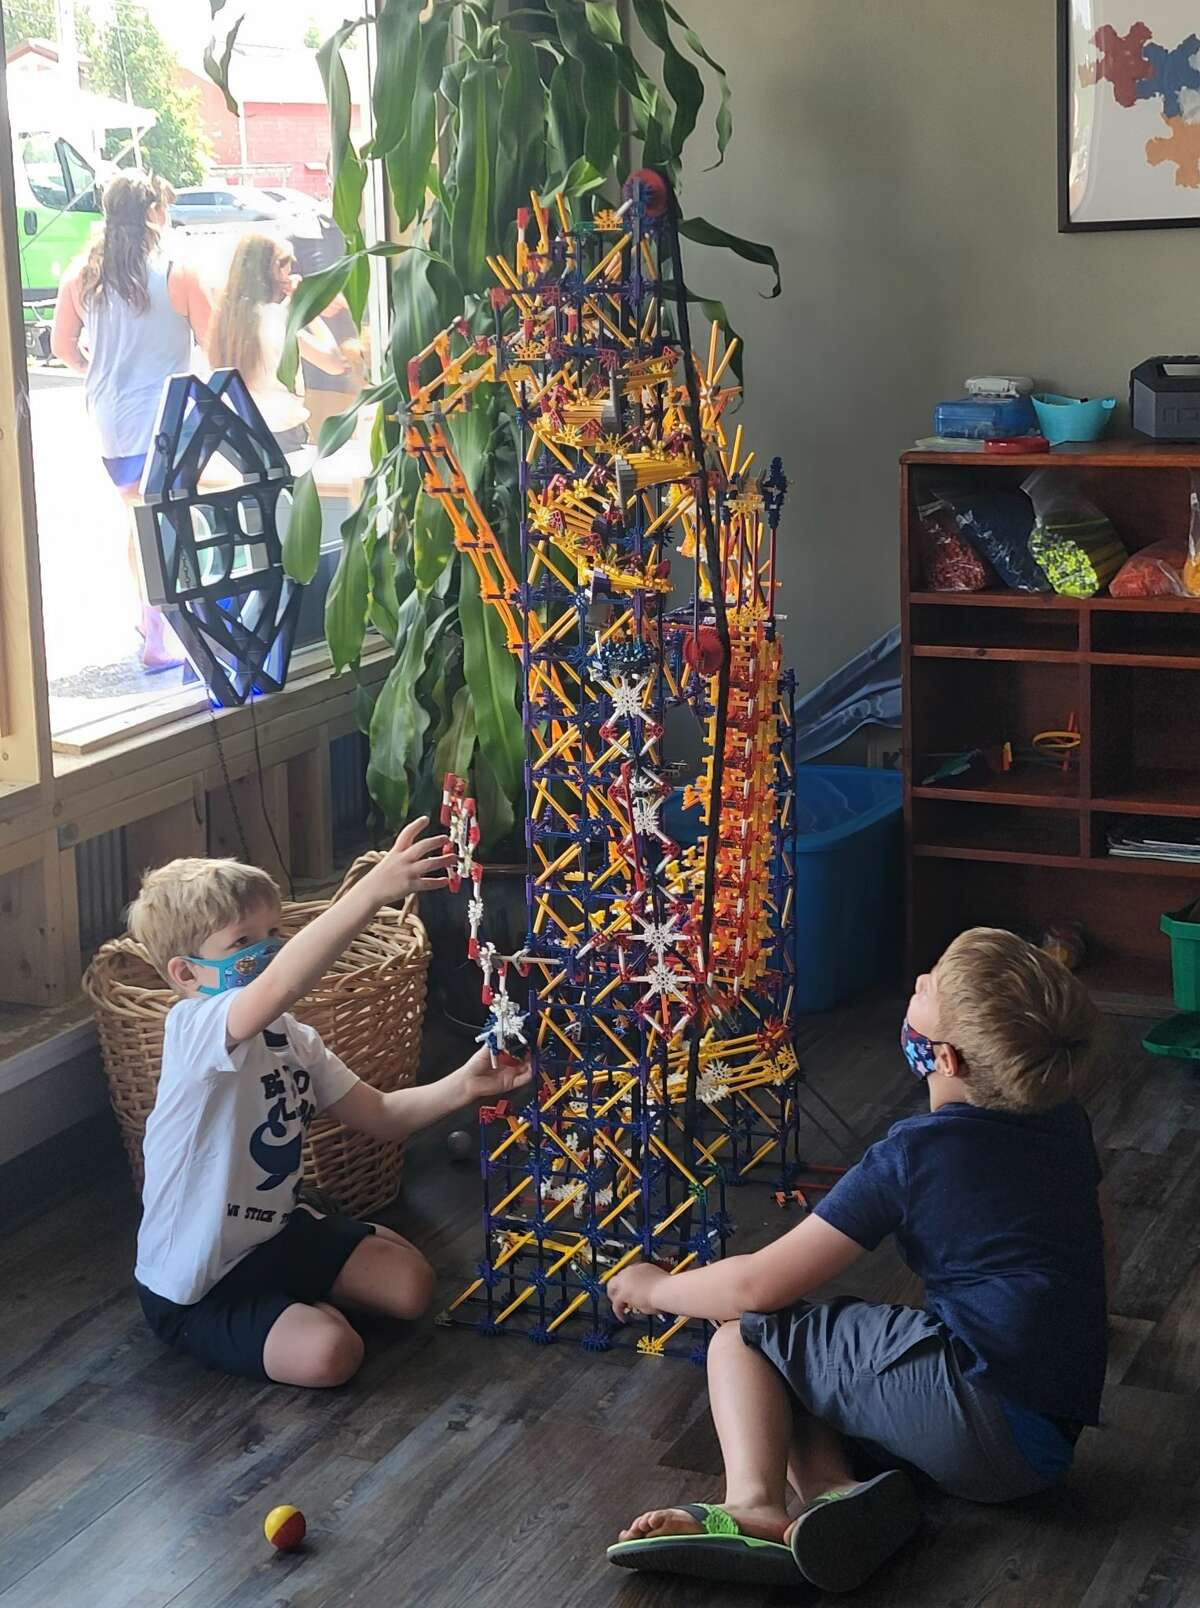 Children work on building a tower with an erector set type of building toy.